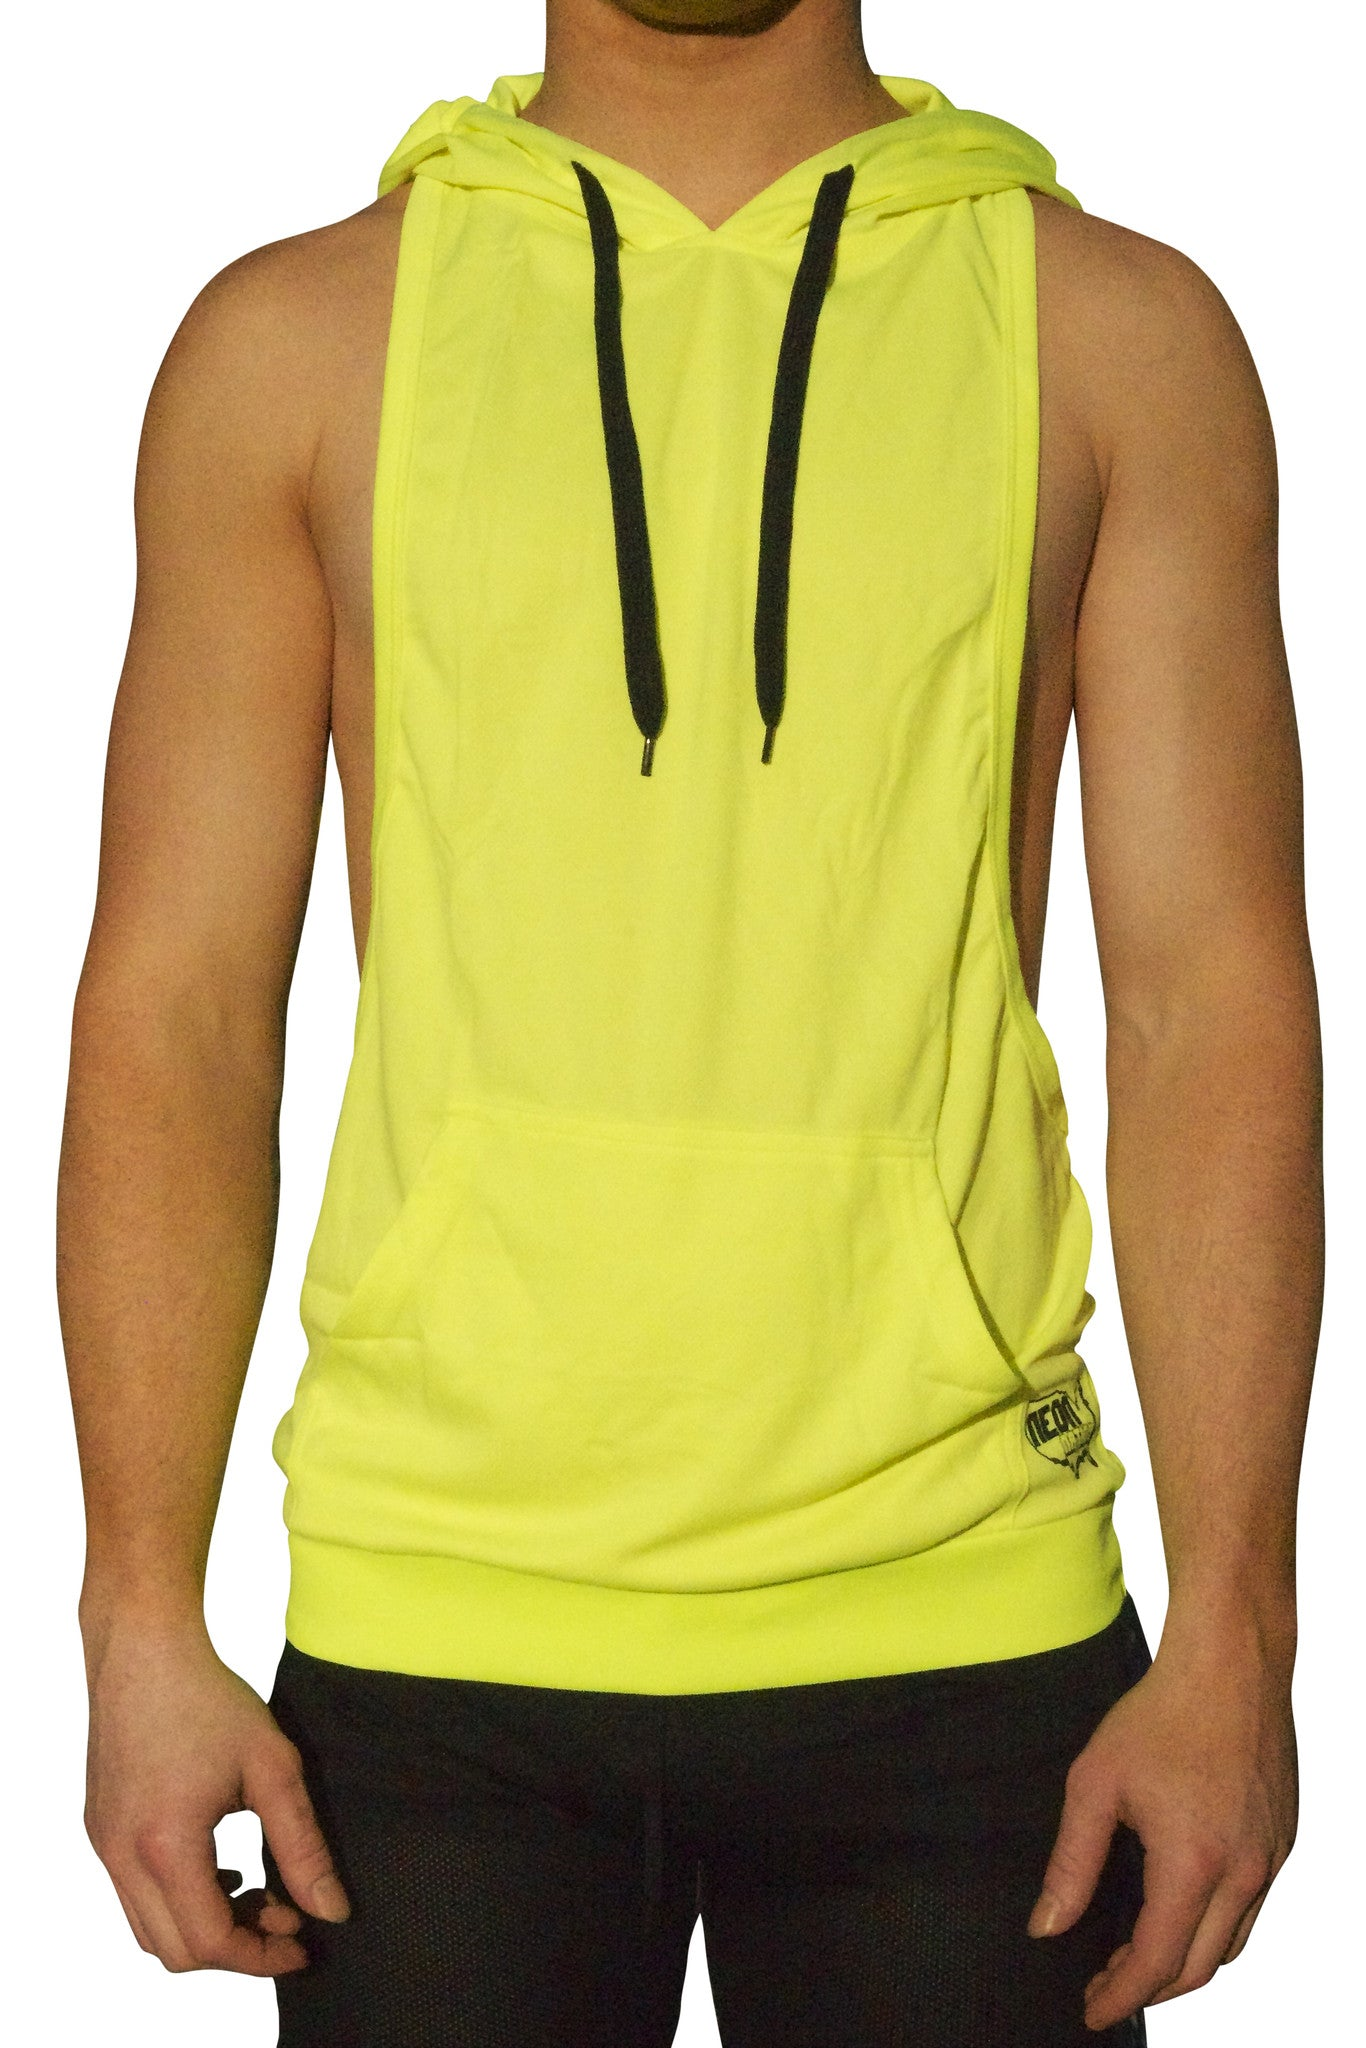 91925782388f0 Neon Nation Muscle Cut Athletic Bodybuilder Stringer Tank Top Hoodie - Neon  Nation